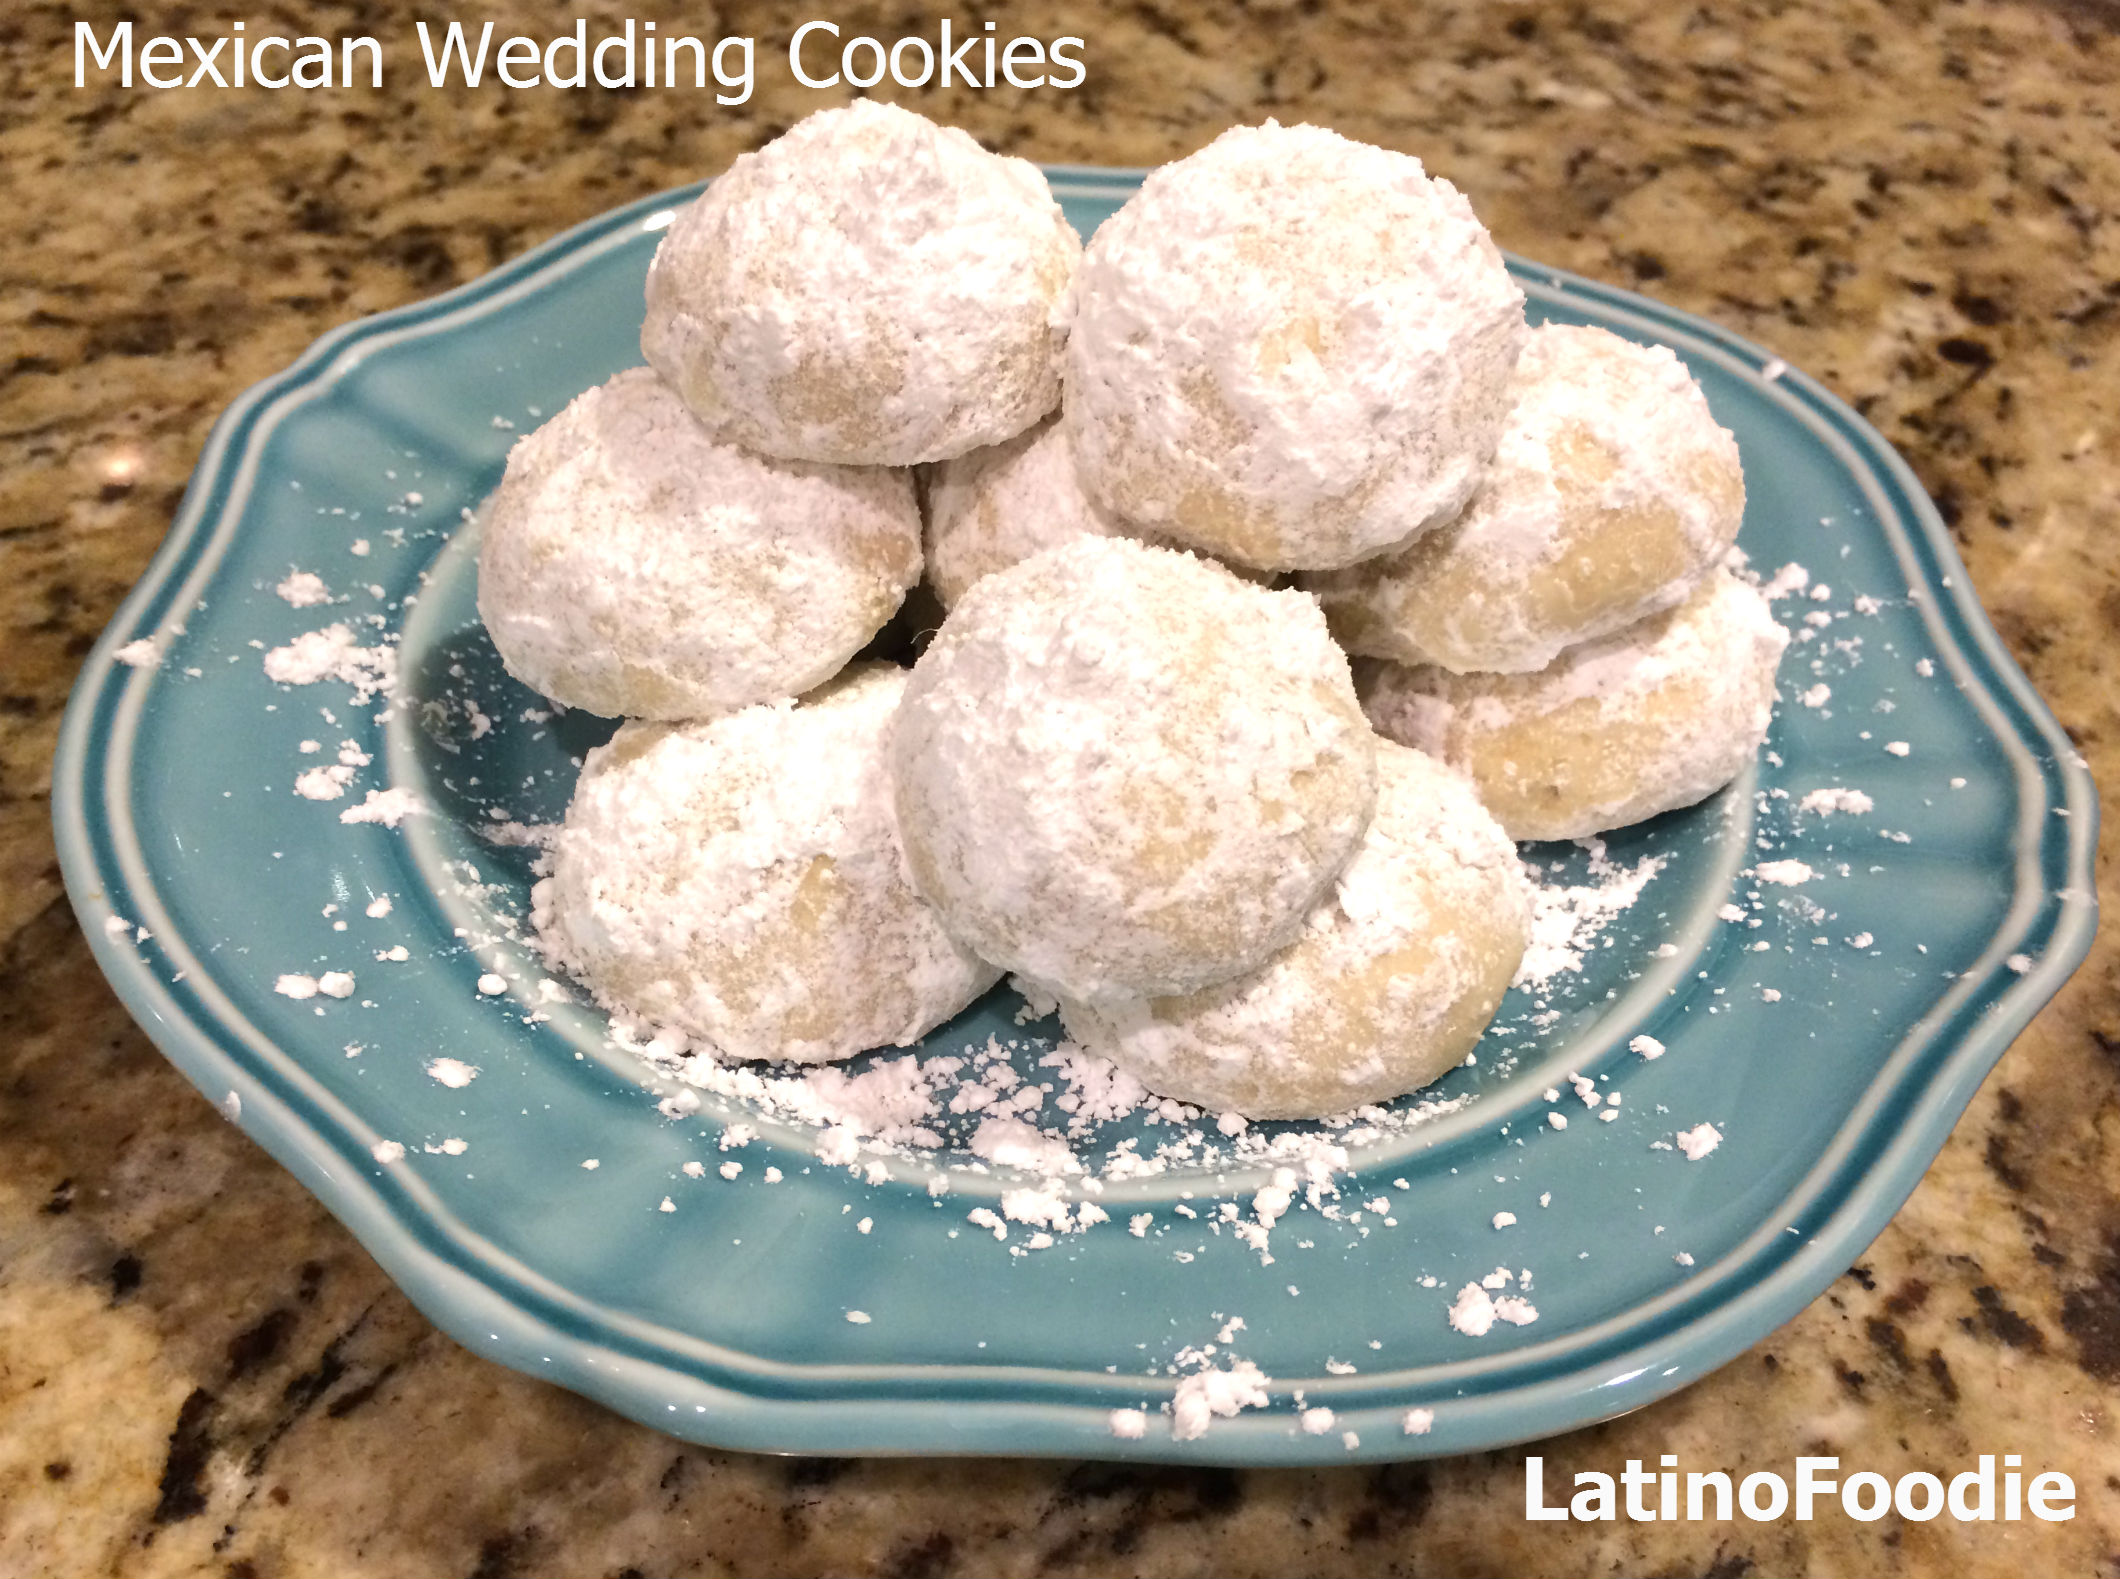 Recipe for Nutty and Delicate Mexican Wedding Cookies - Latino Foodie